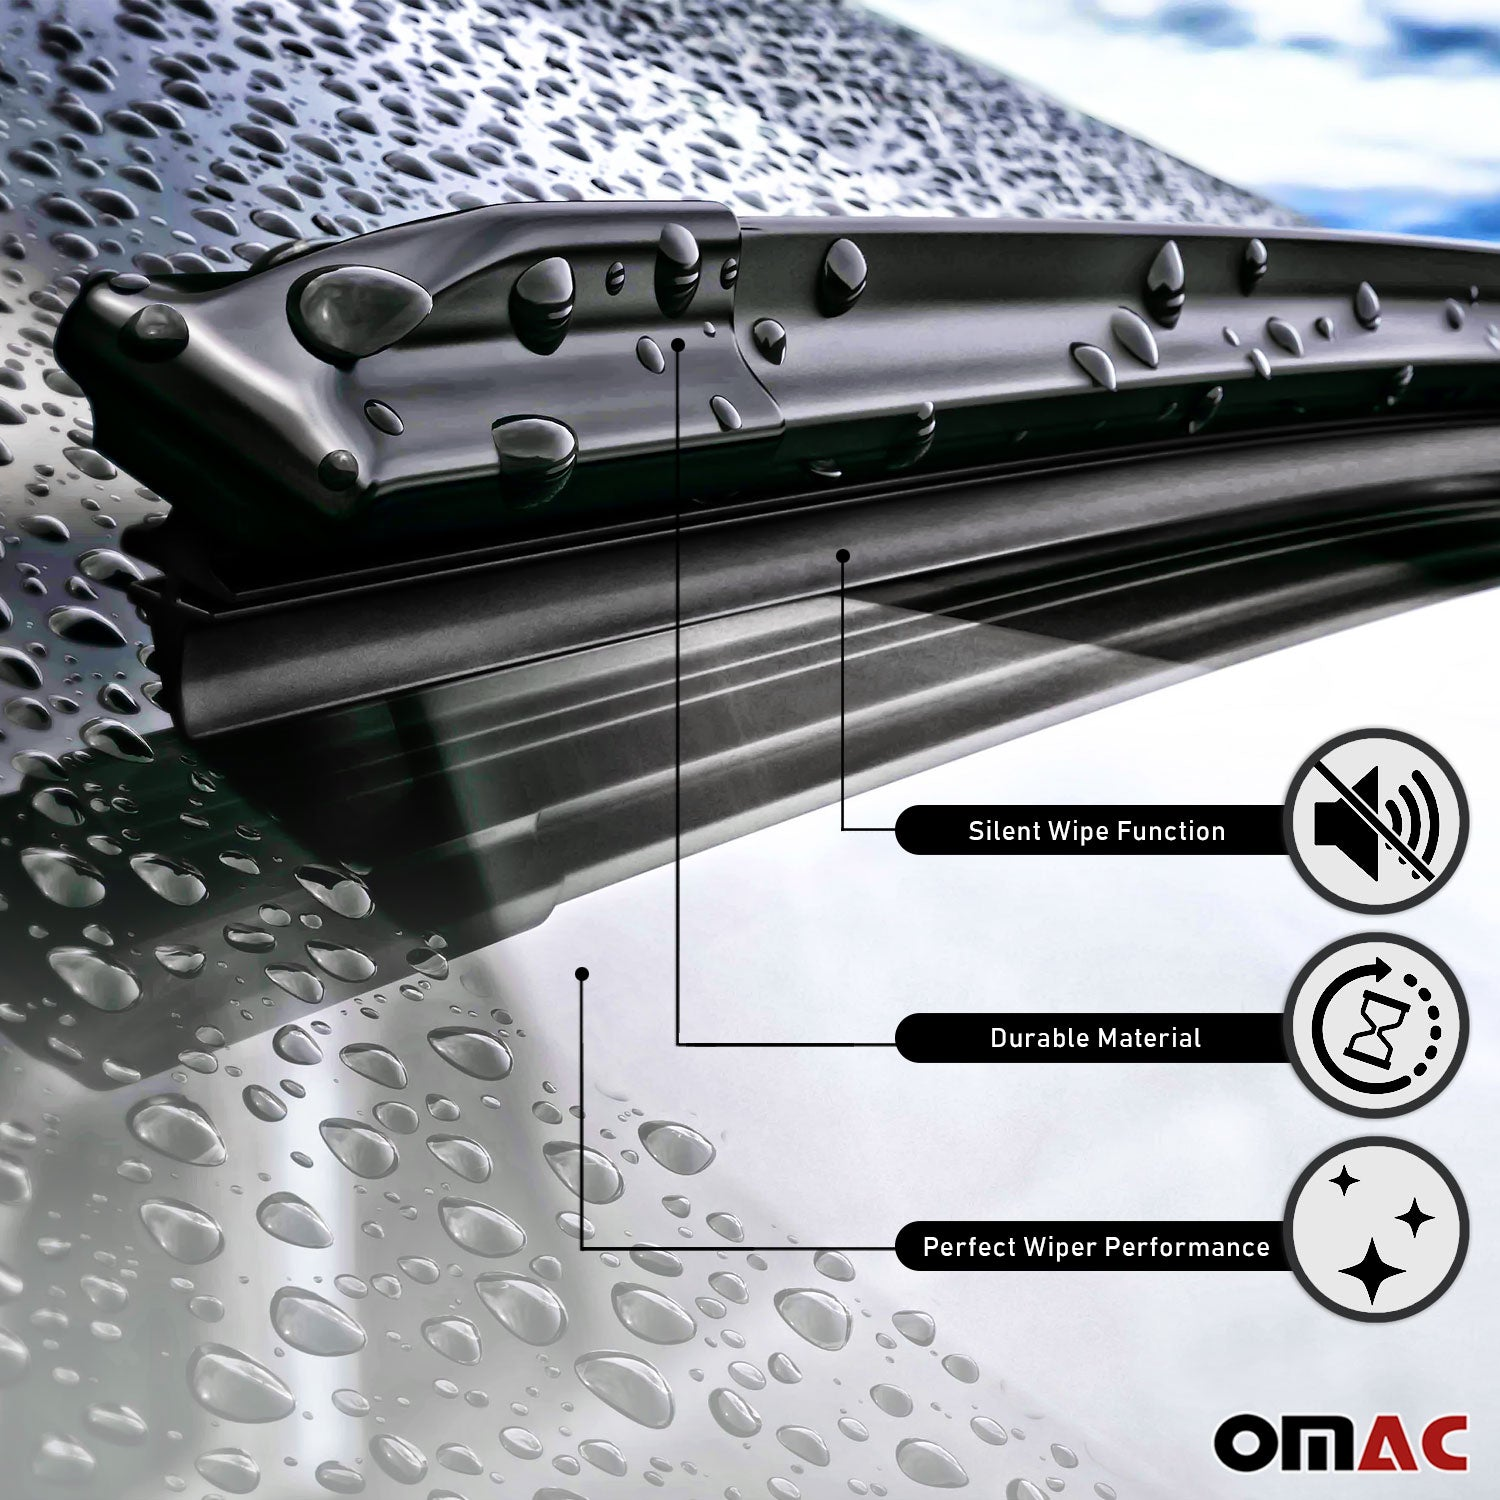 "OMAC Premium Wiper Blades 17"" & 26 '' Combo Pack for Nissan Altima 2002-2006"